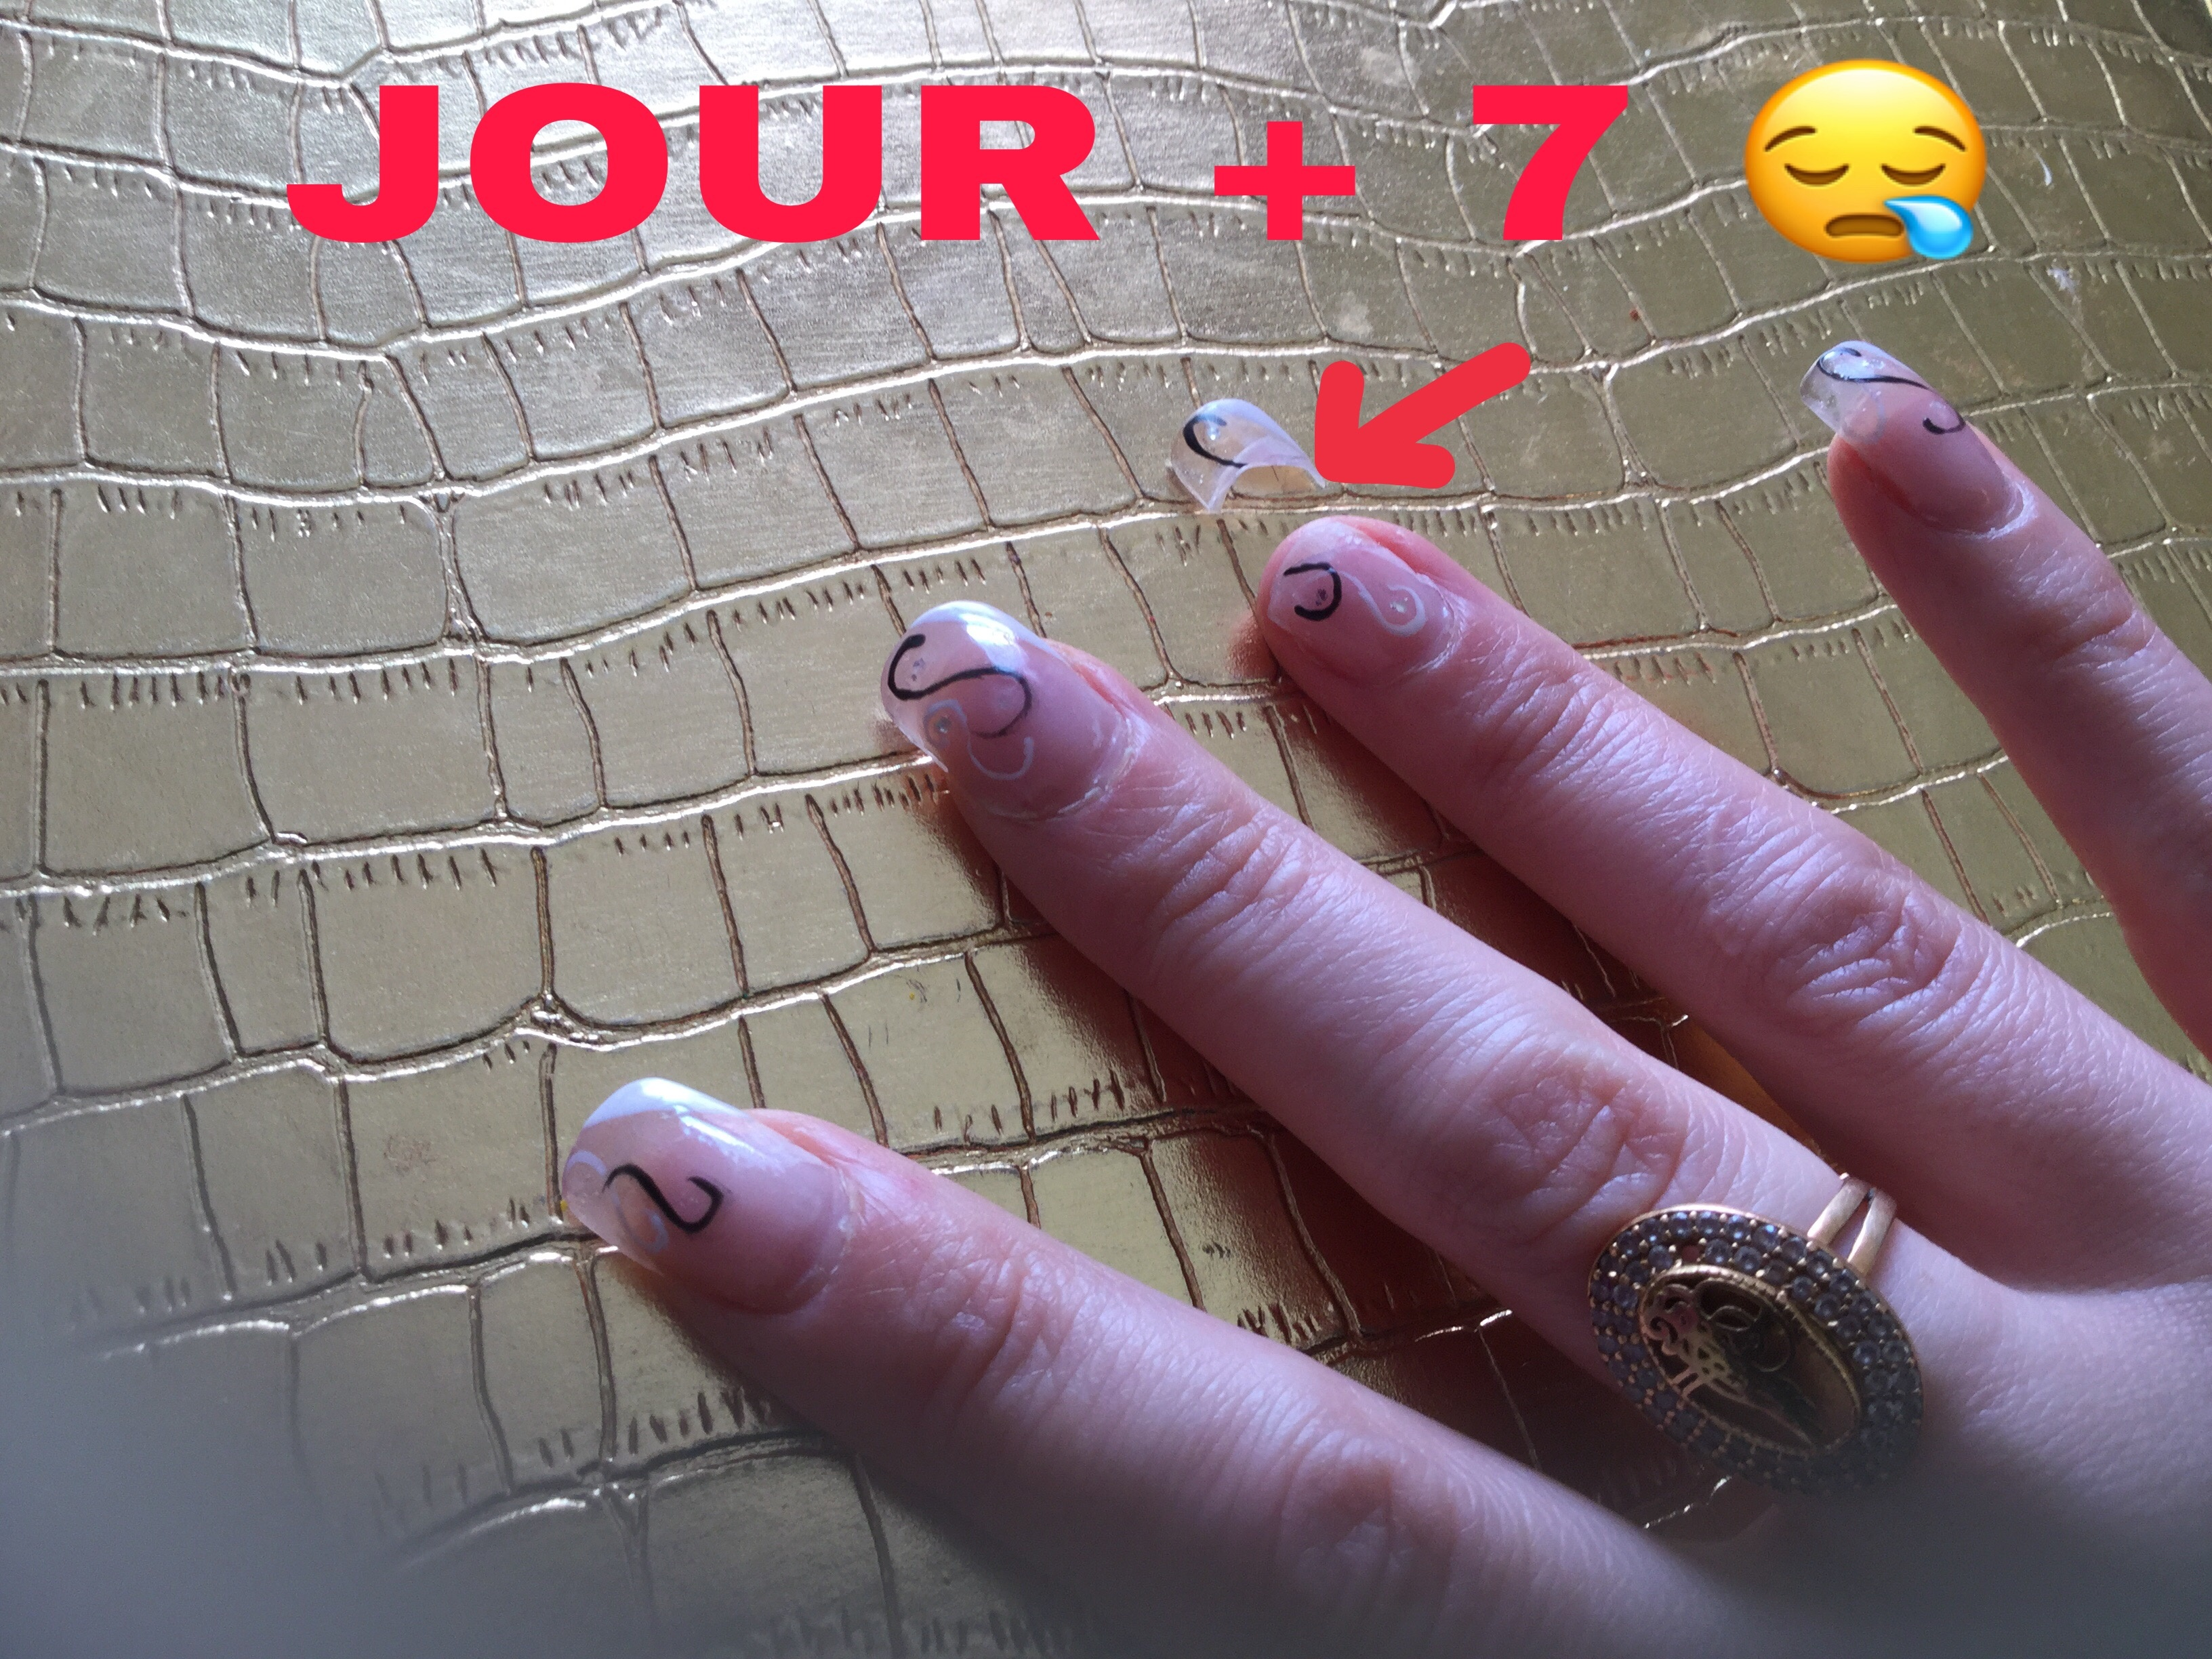 Vos diagnostics ? POSE en GEL ProNails : Jour + 7